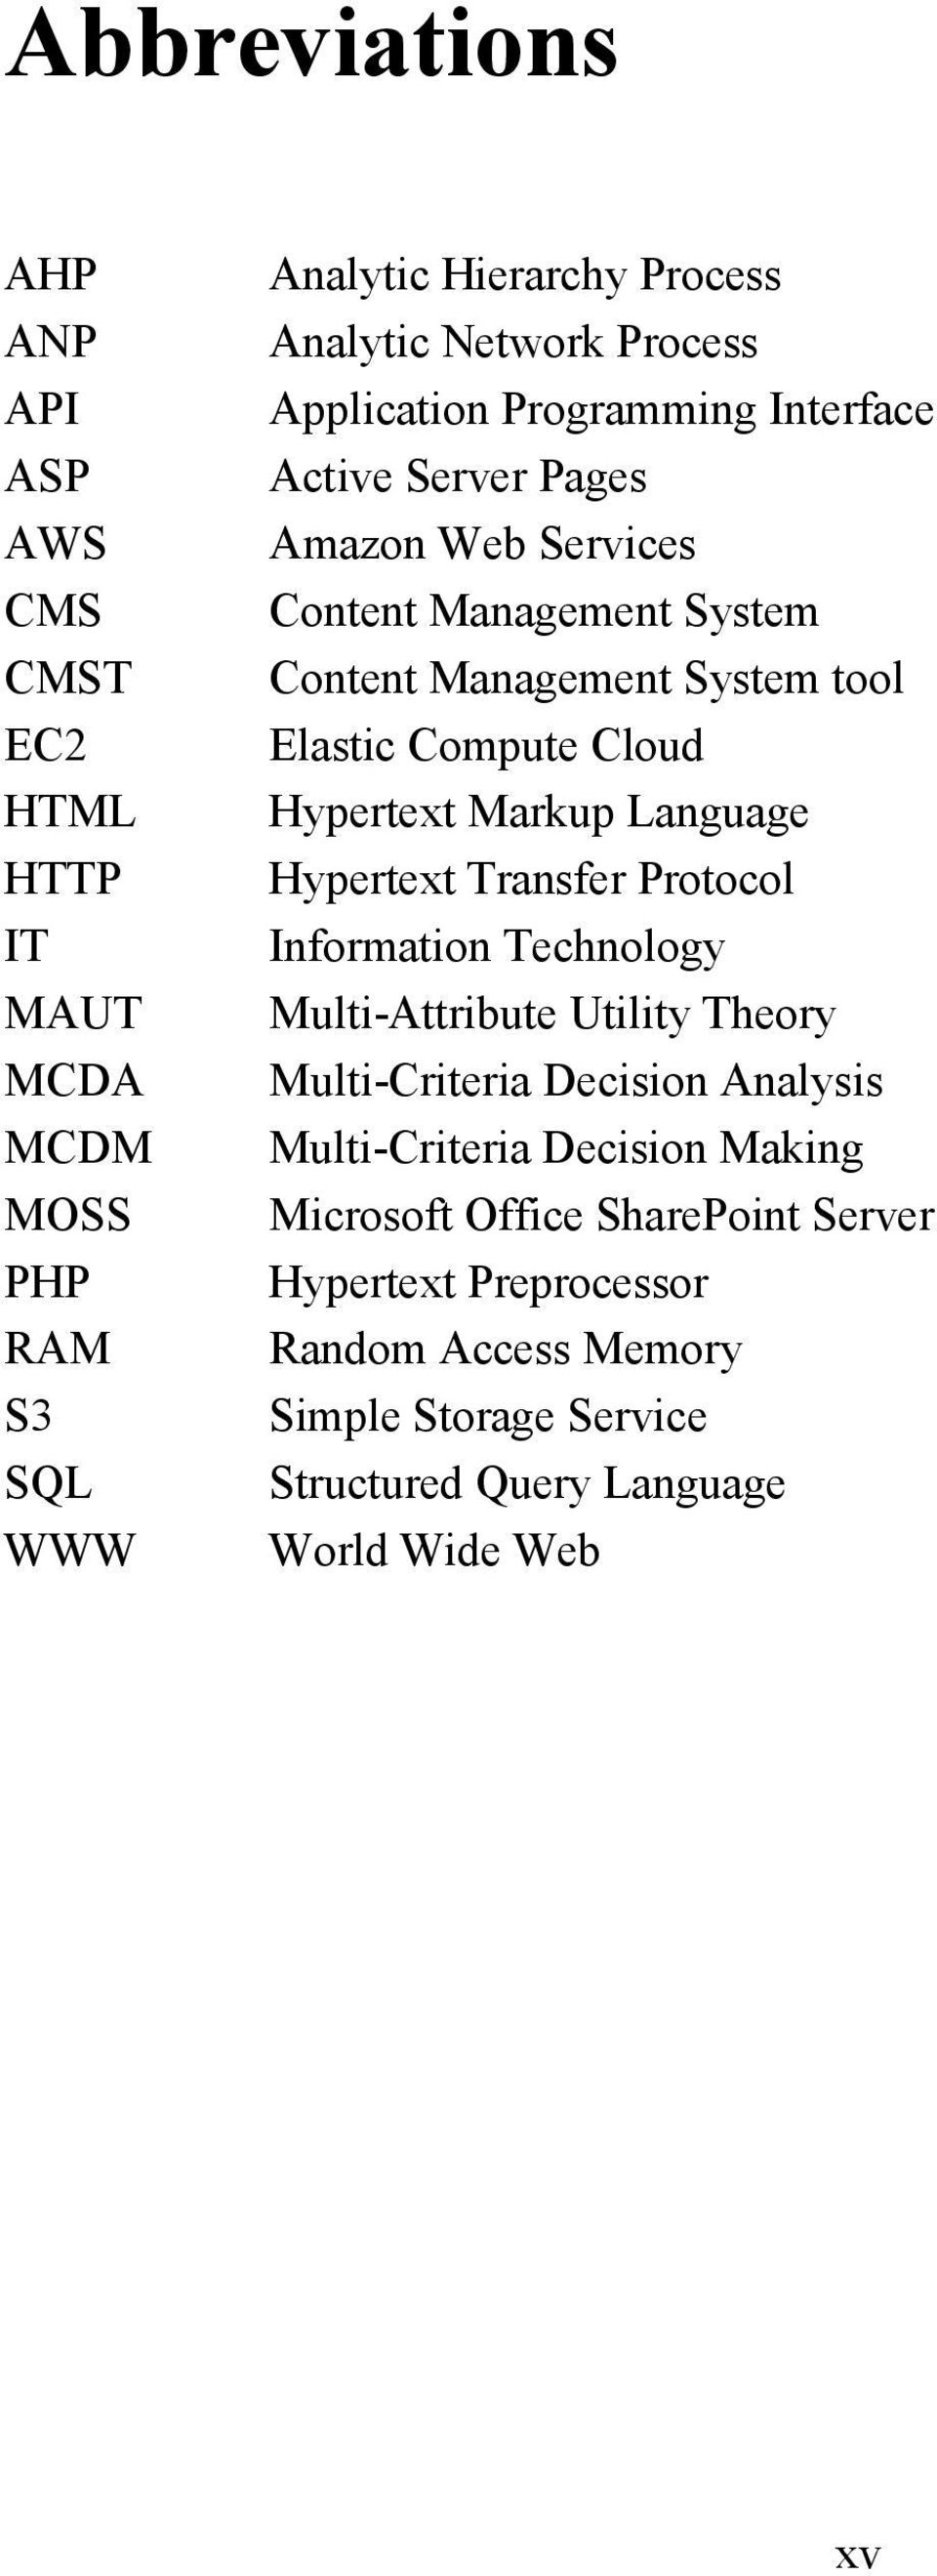 an analysis of the hypertext in information technology 1 an analysis of the requirements traceability problem orlena c z gotel & anthony c w finkelstein imperial college of science, technology and medicine department of computing.